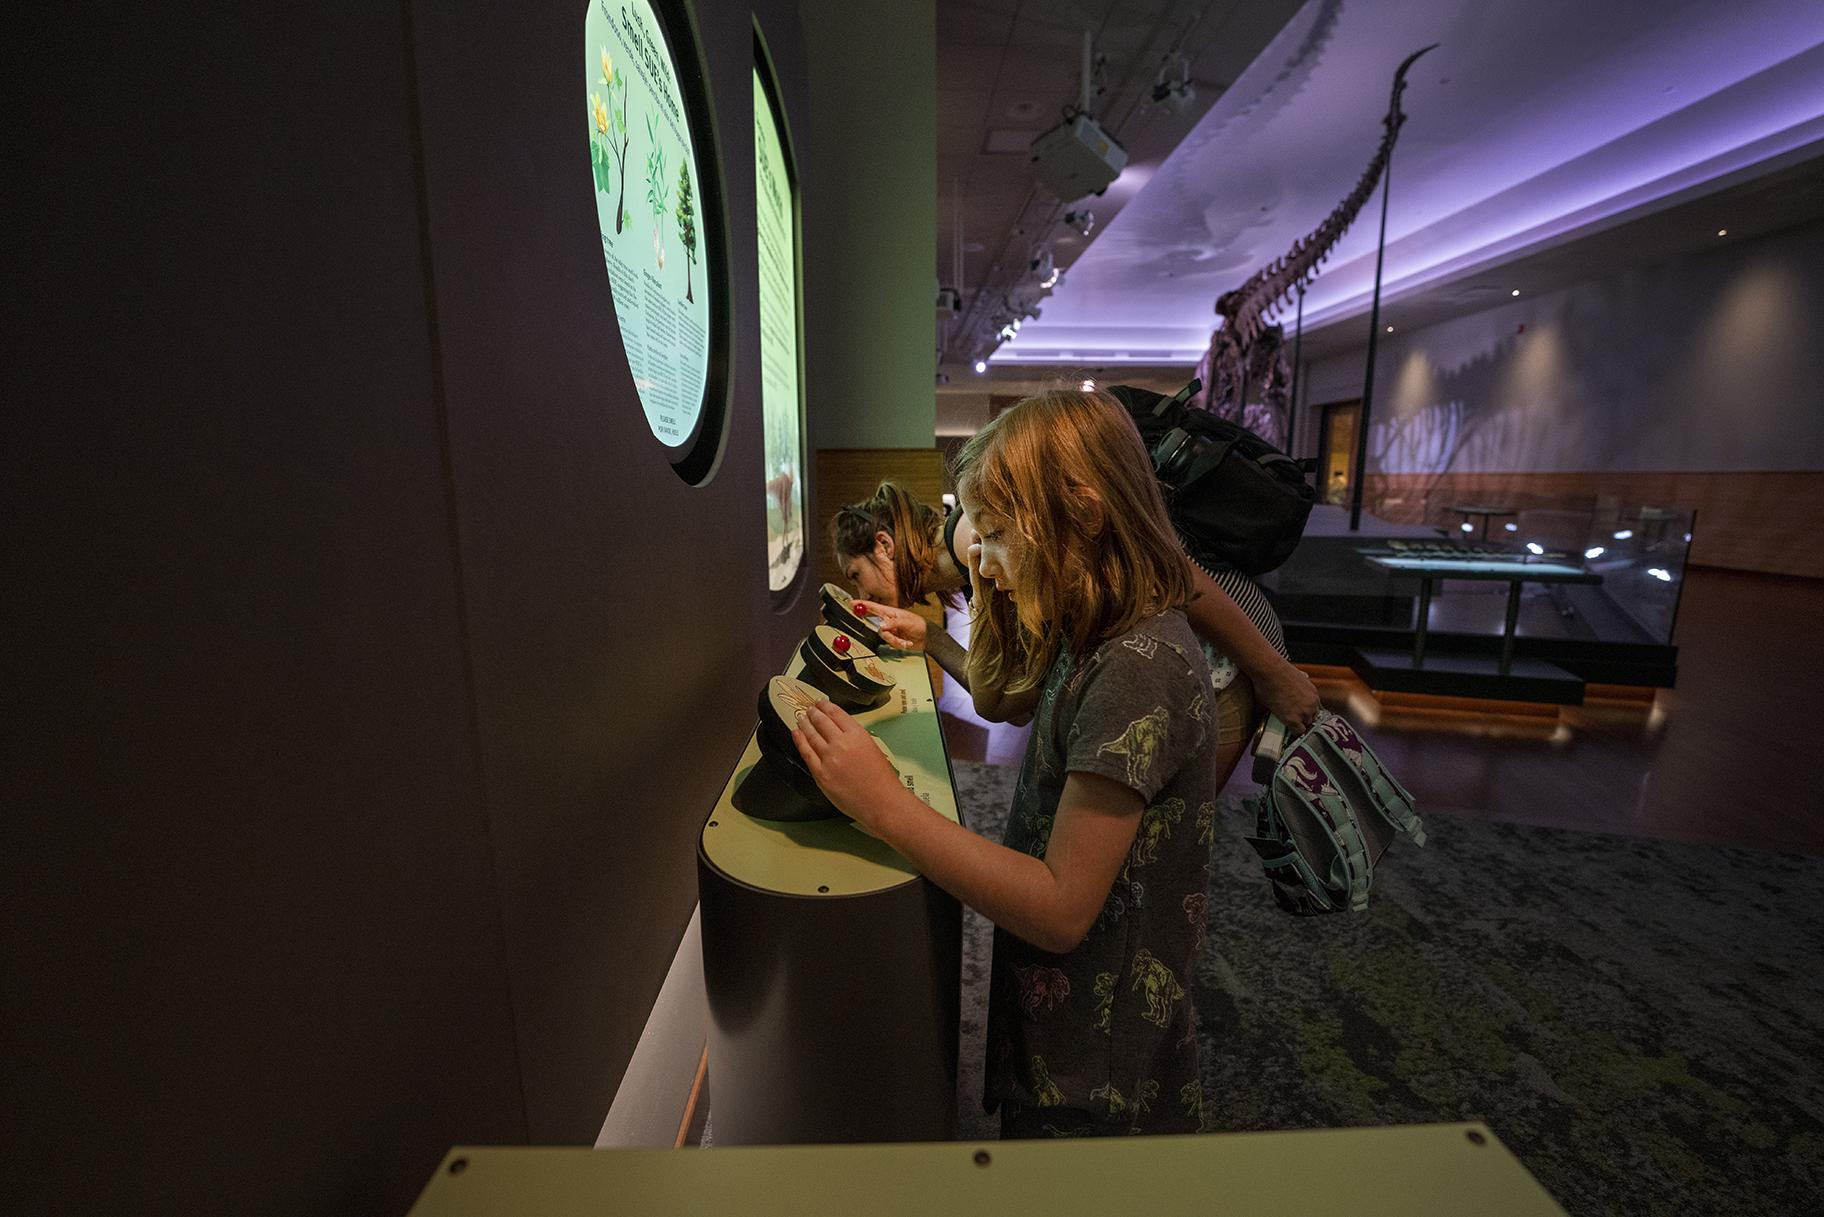 Thanks to research on fossil plants, Field Museum visitors can now experience what the Late Cretaceous forest traversed by Sue the T. Rex might have smelled like. (Martin Baumgaertner / Field Museum)